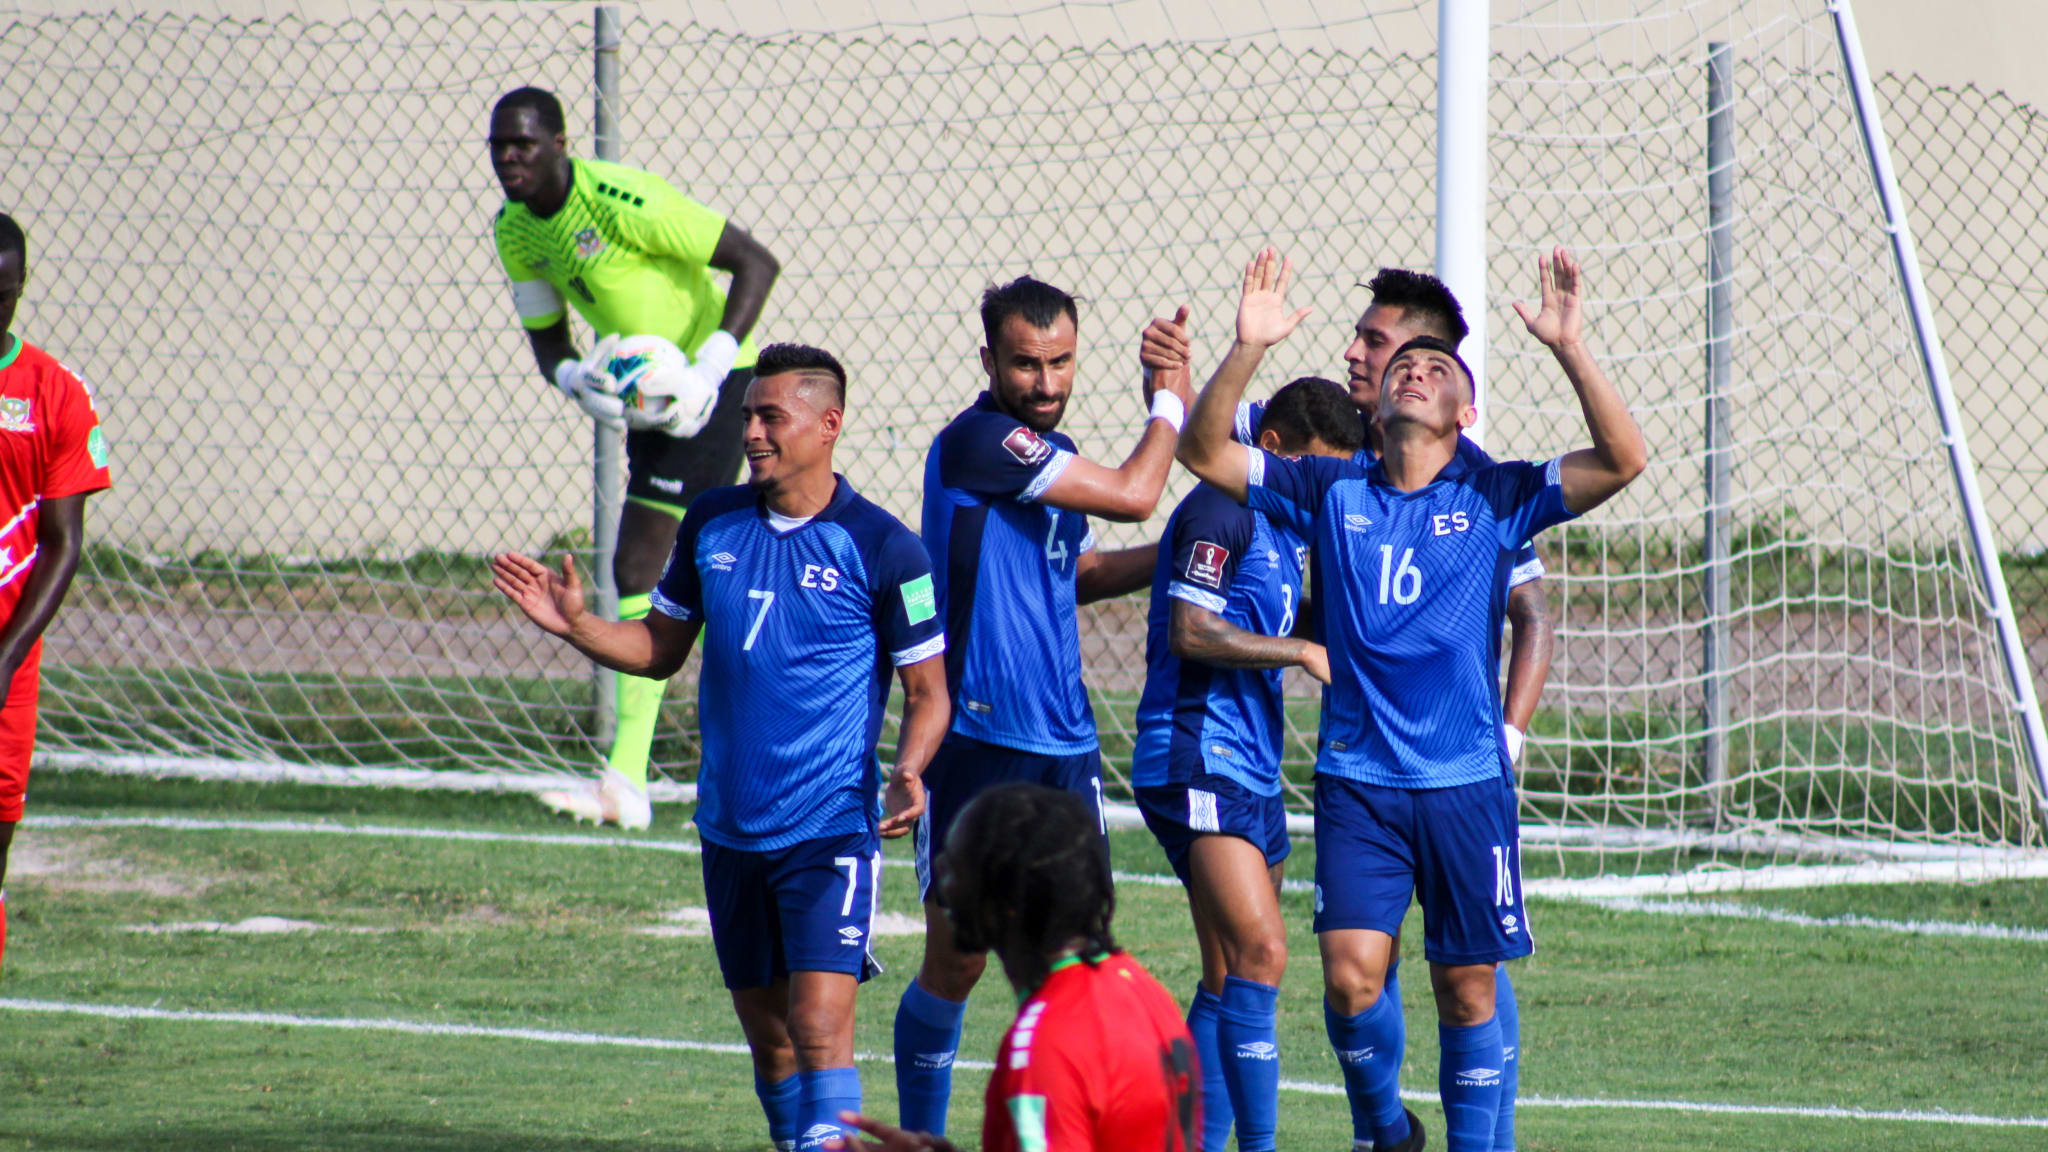 Image of the match between St. Kitts and Nevis and El Salvador as part of Concacaf Qualifier for Qatar 2022 (Photo: @LaSelecta_SLV)